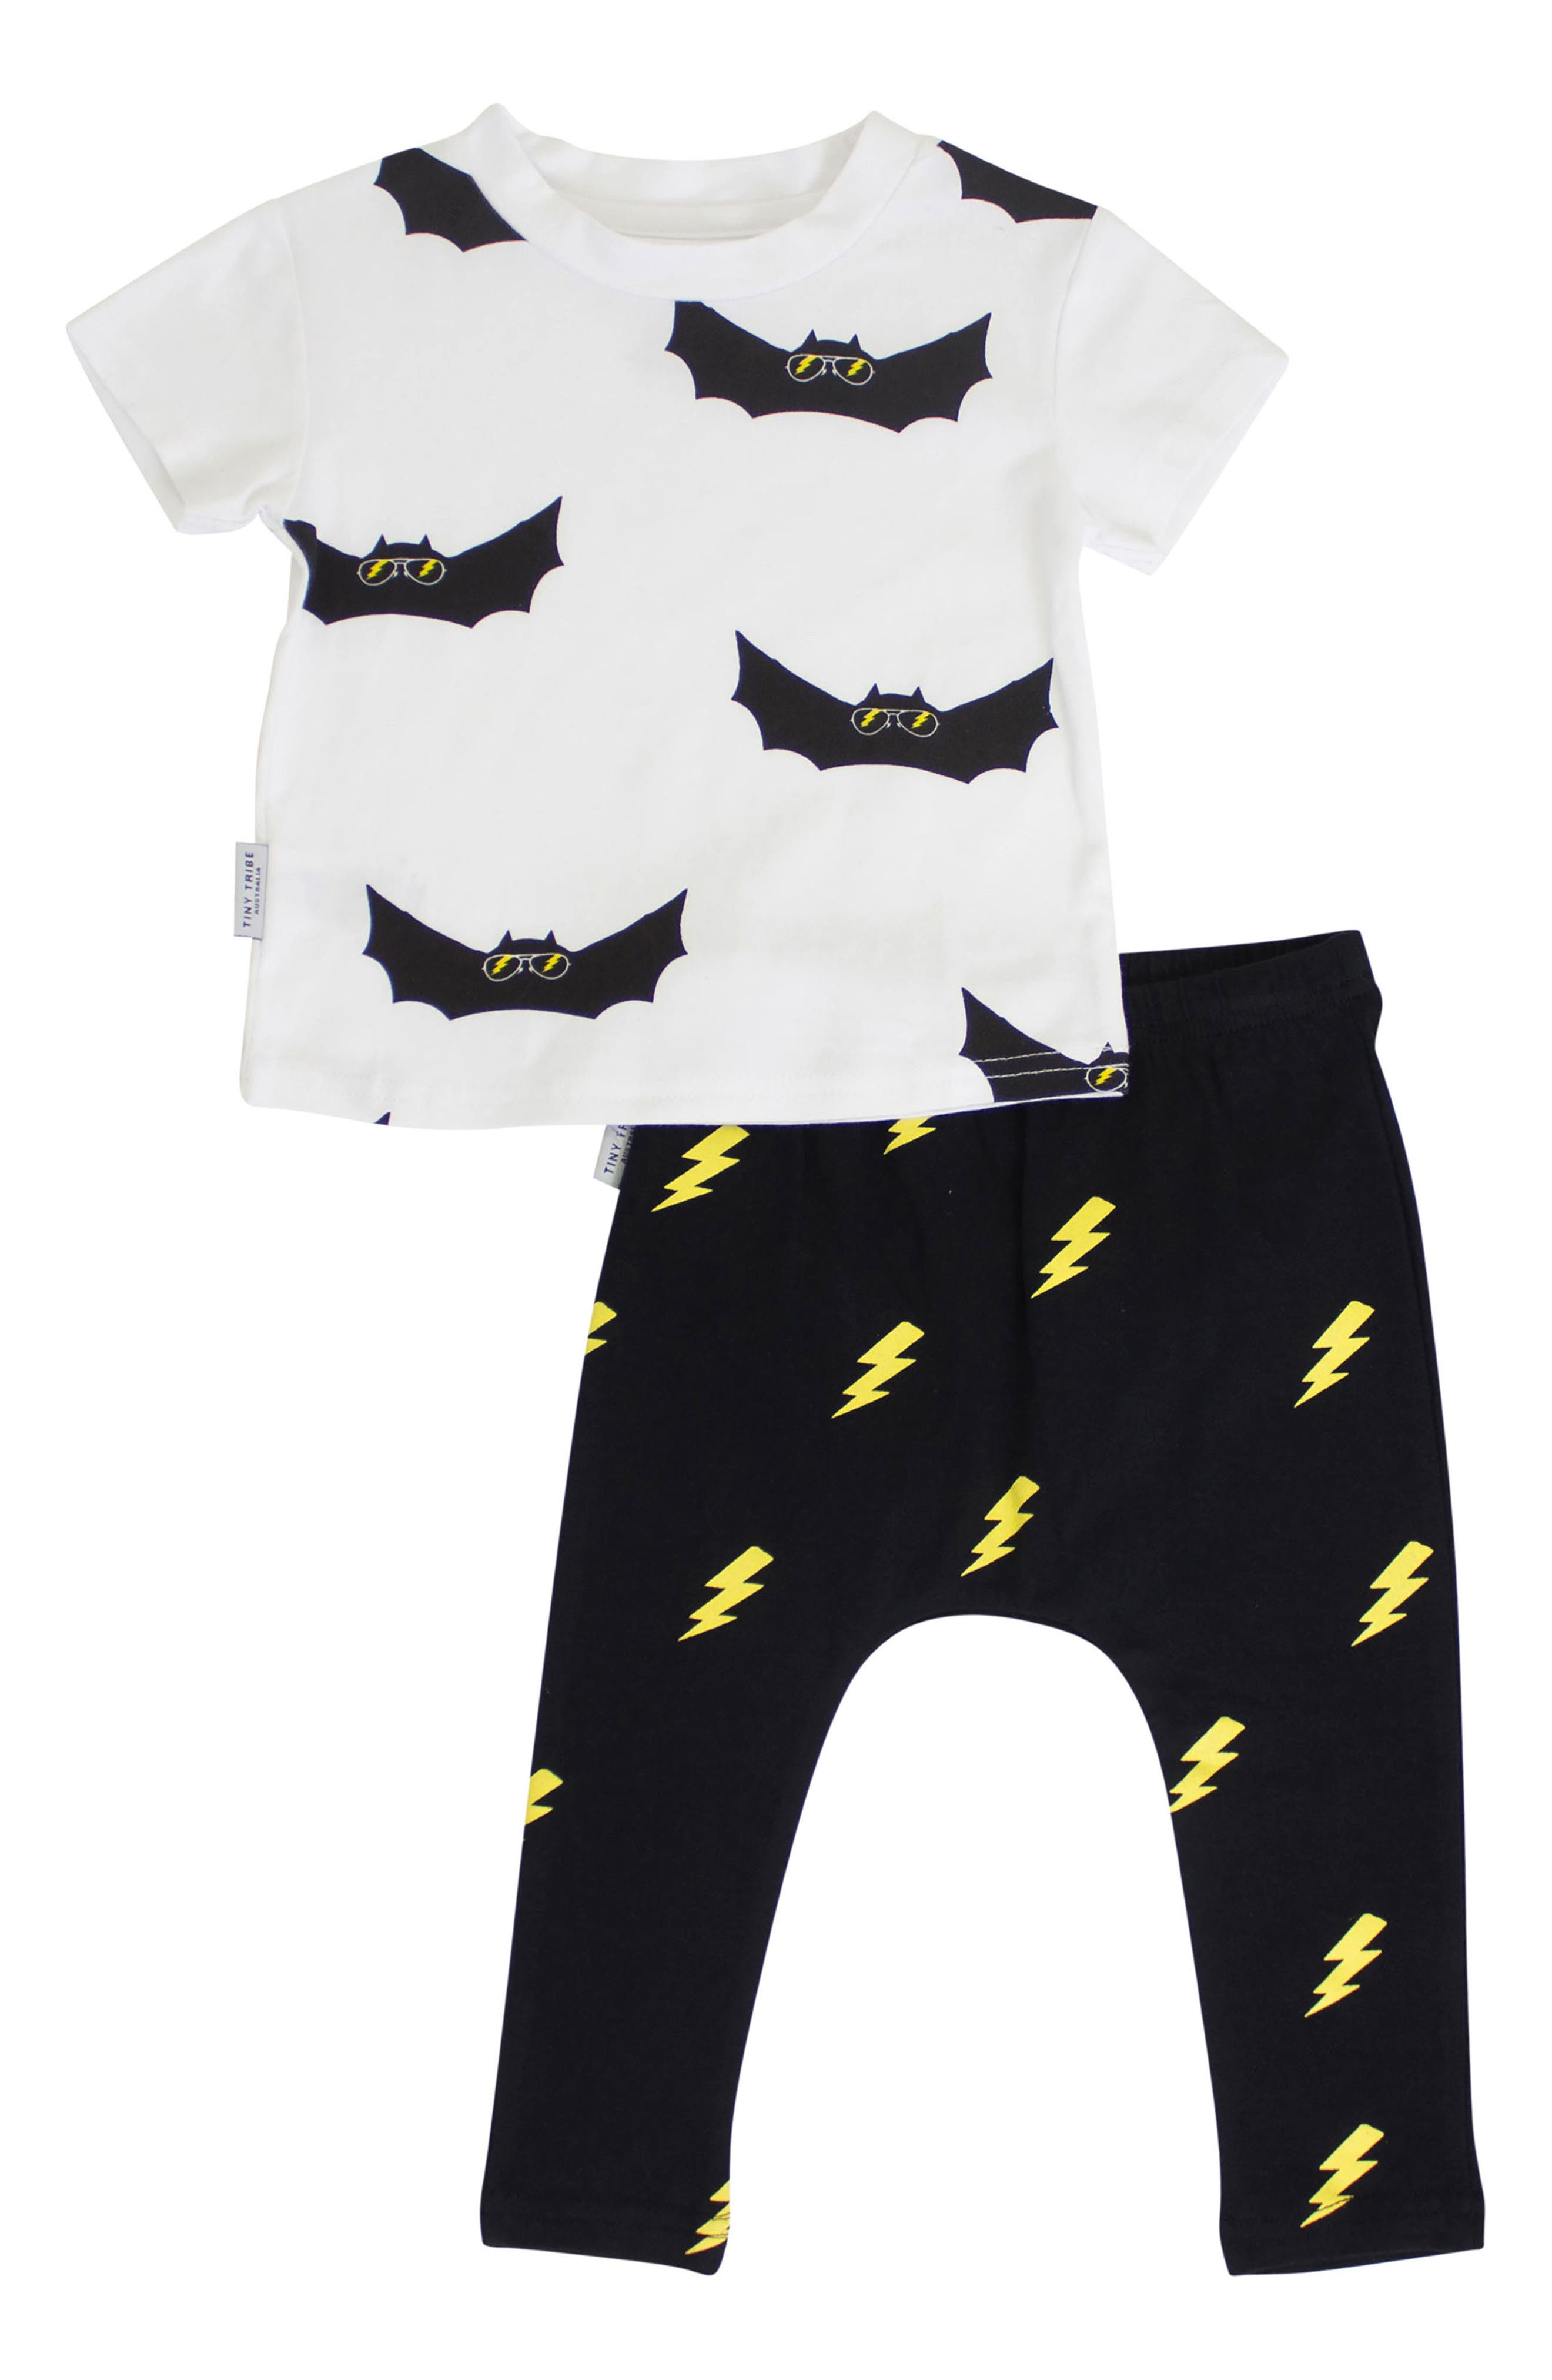 Bat Shirt & Leggings Set,                             Main thumbnail 1, color,                             White/ Black